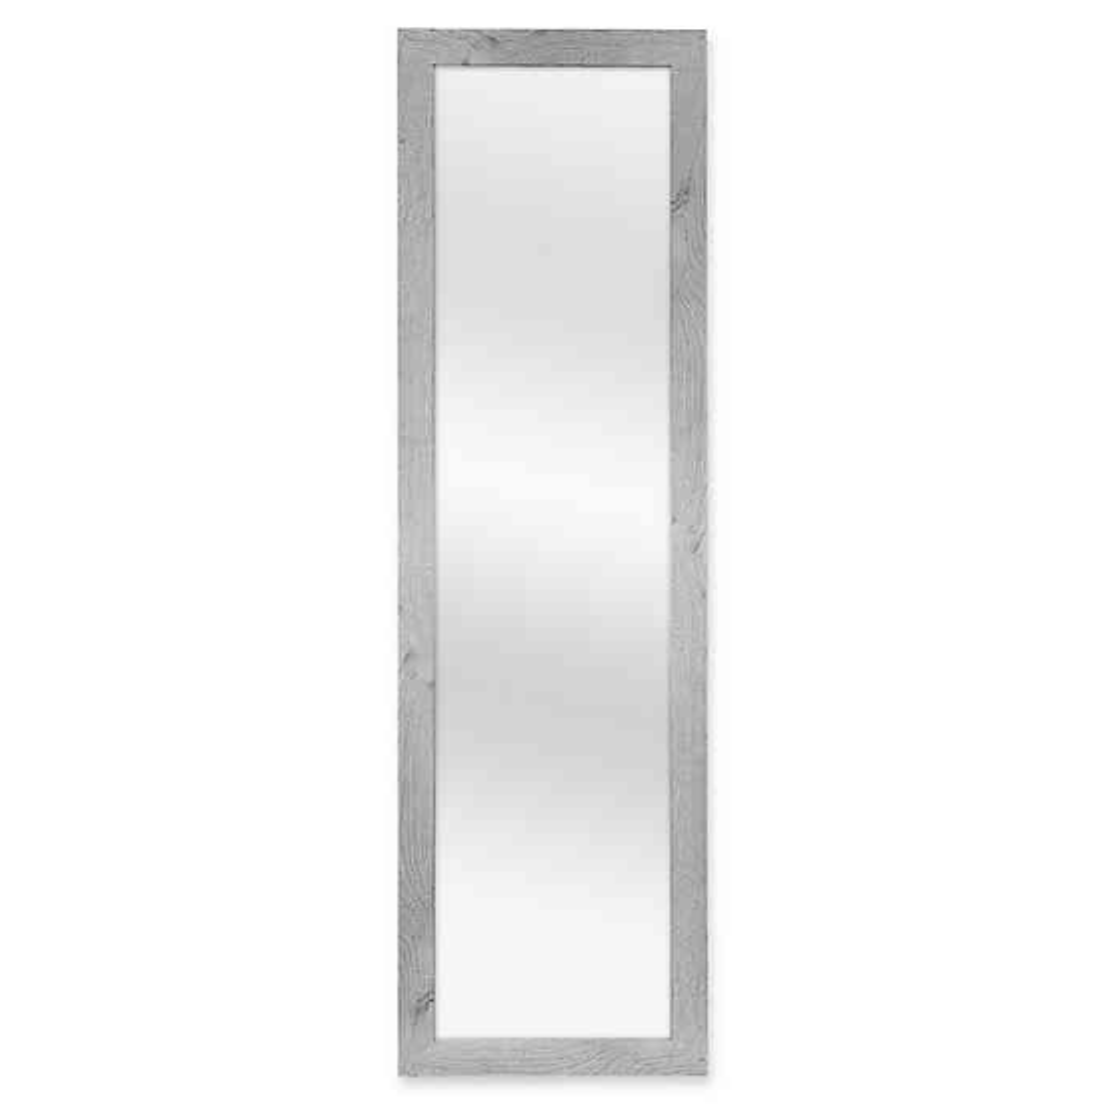 "Over-The-Door Hanging Grey Mirror - Wood Frame, Total 51""x15"